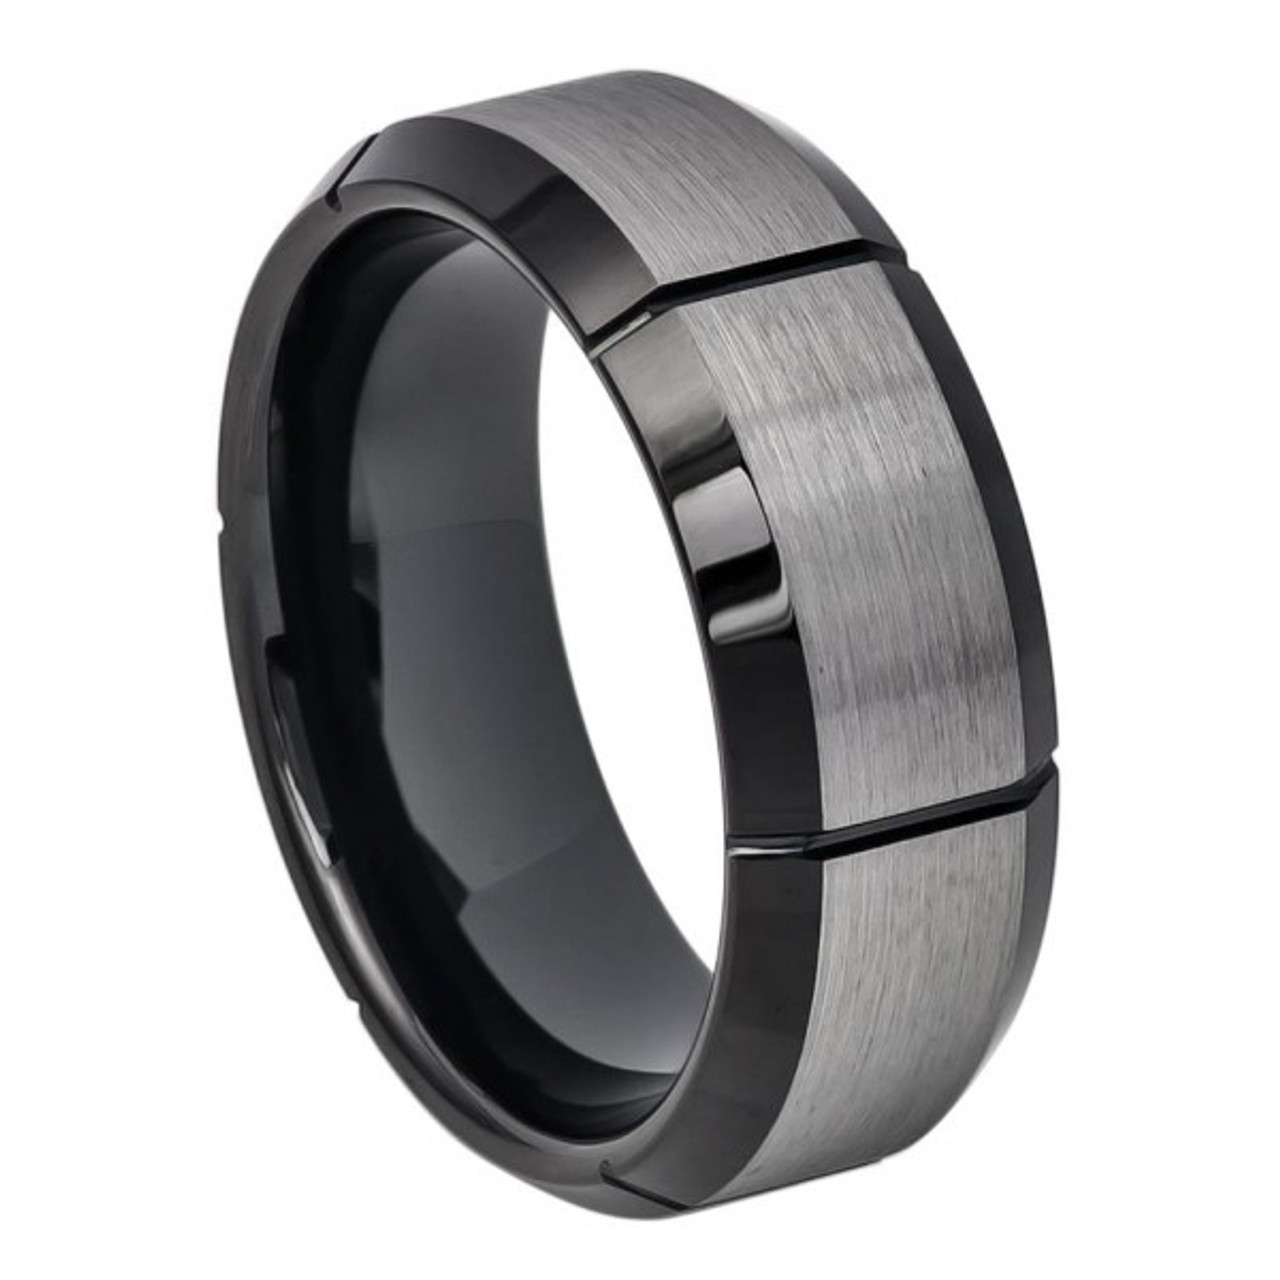 Free Engraving 8mm Tungsten Carbide Two-Tone Black IP Brushed with Steel Color Grooved Center Beveled Edge Wedding Band Ring